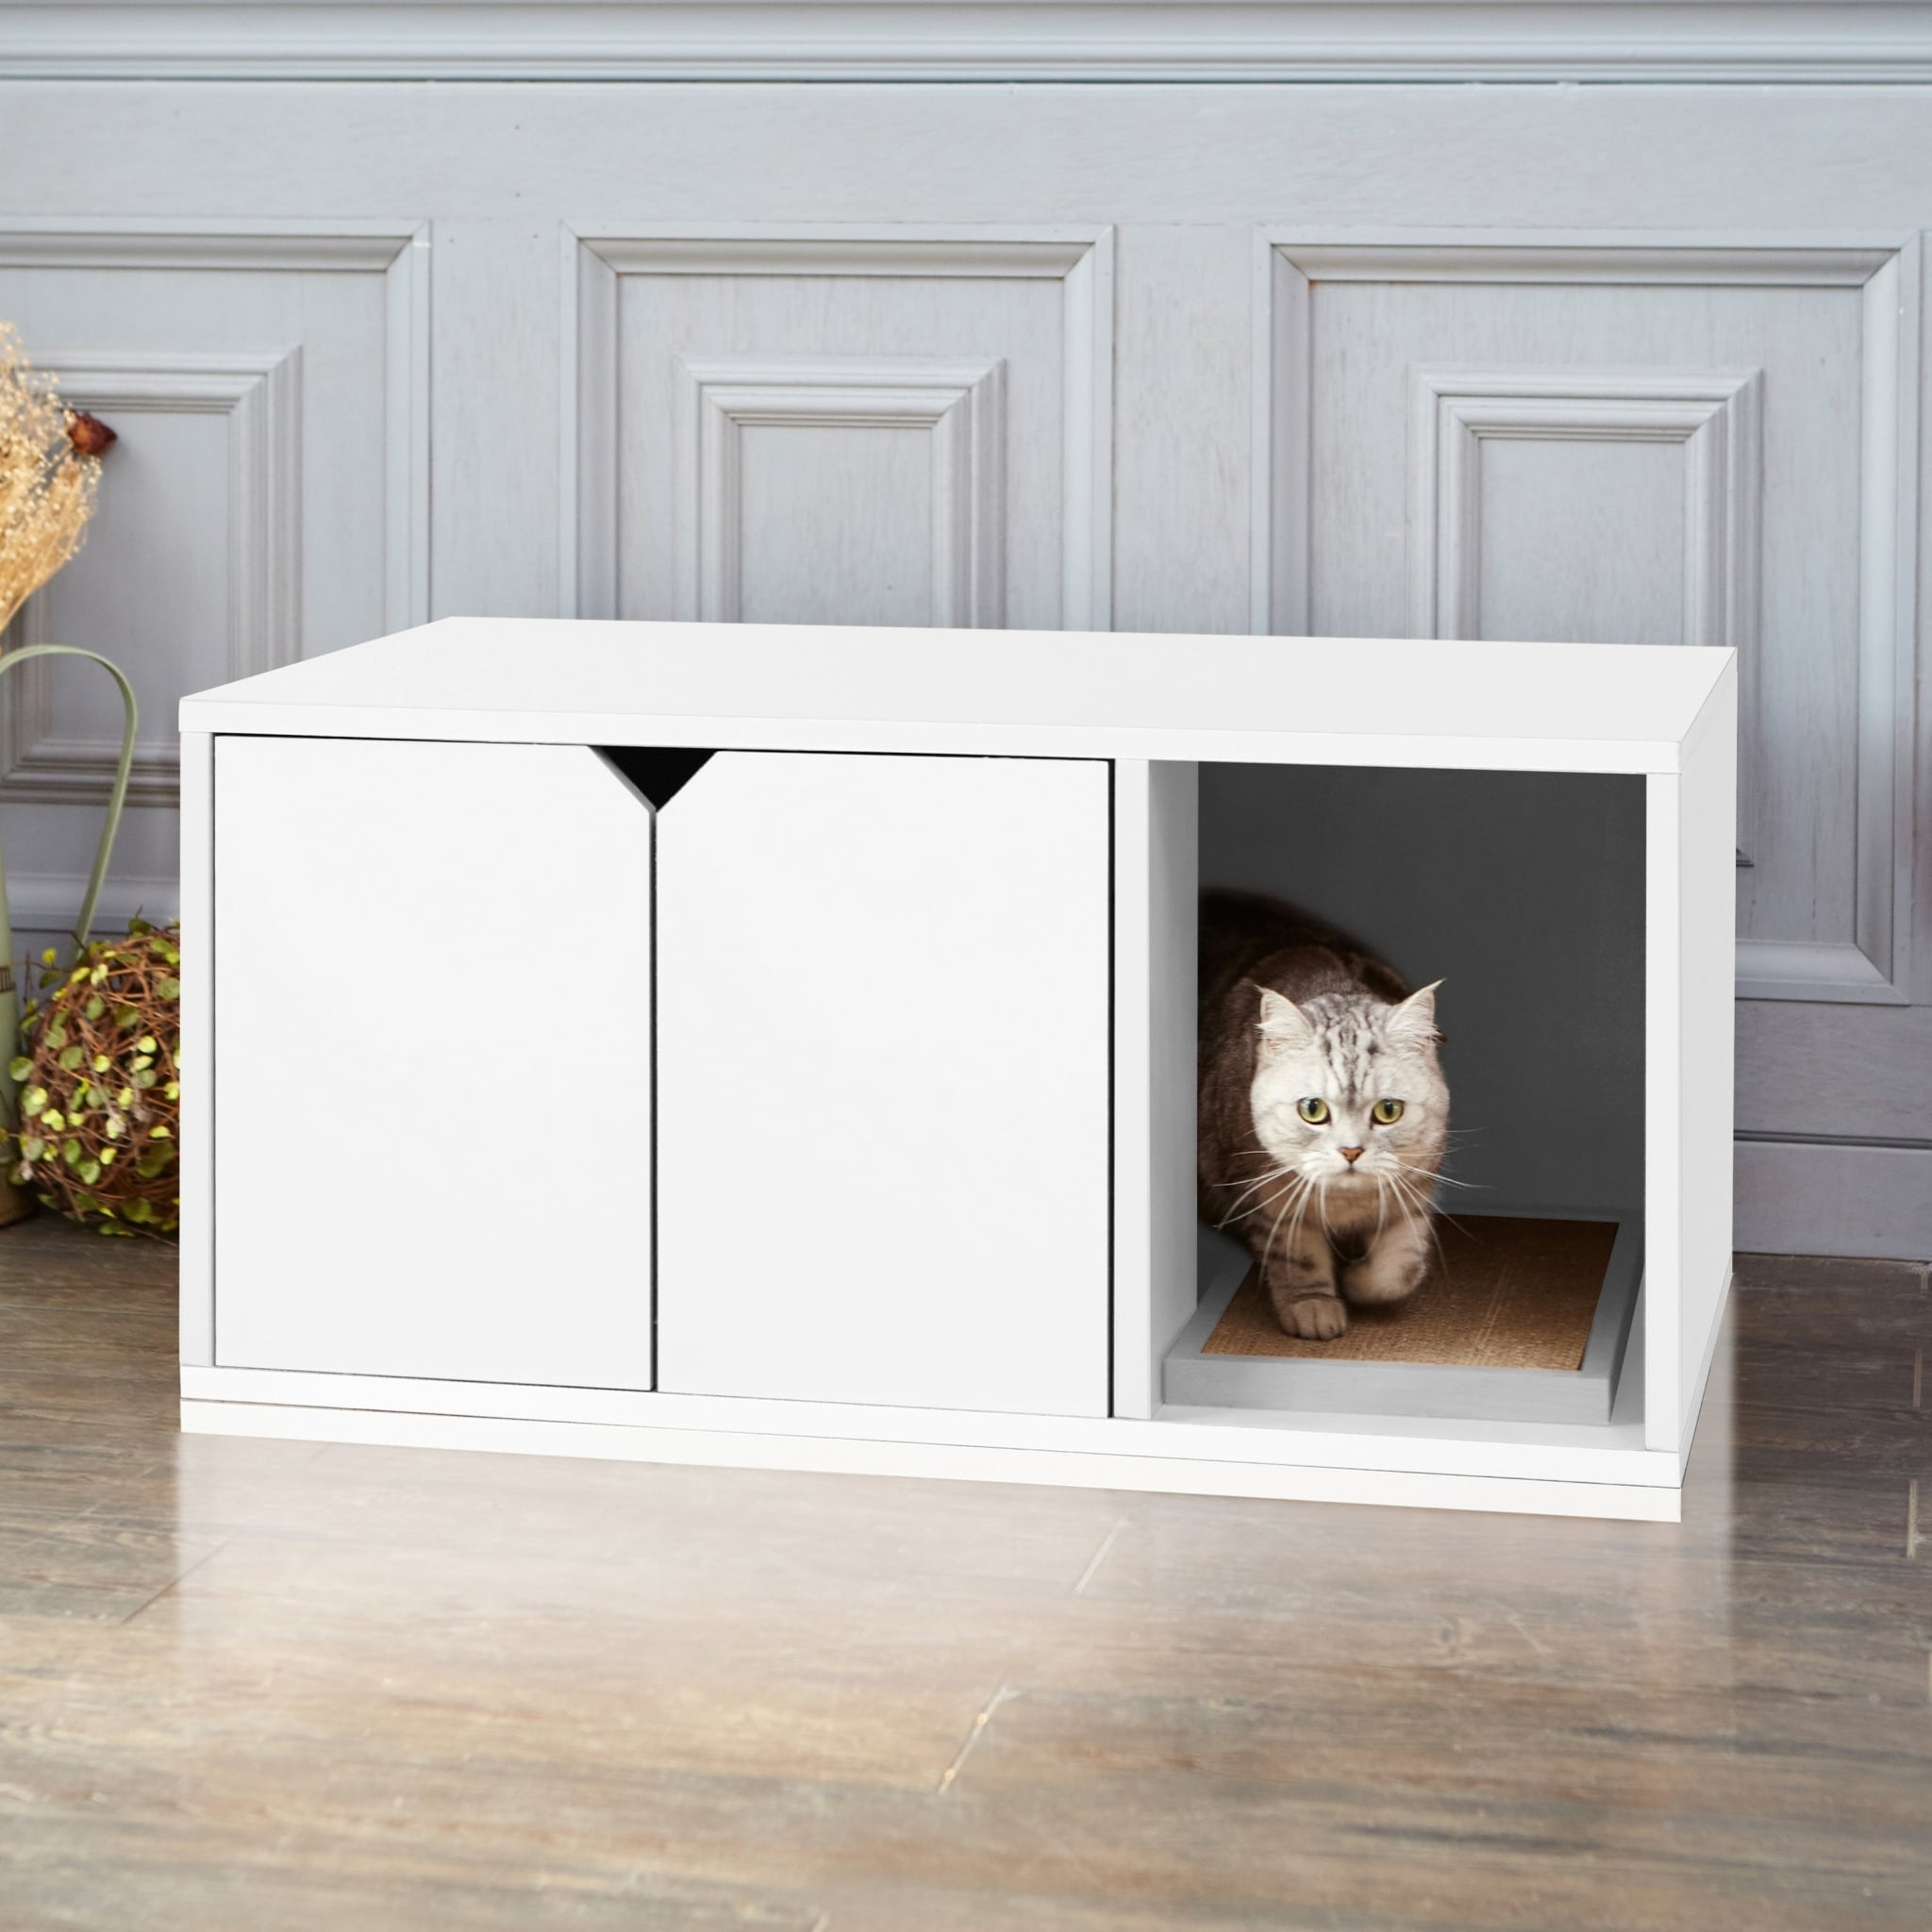 printers box console white printer cat sneaky litterbox or bench s cabinet ana litter